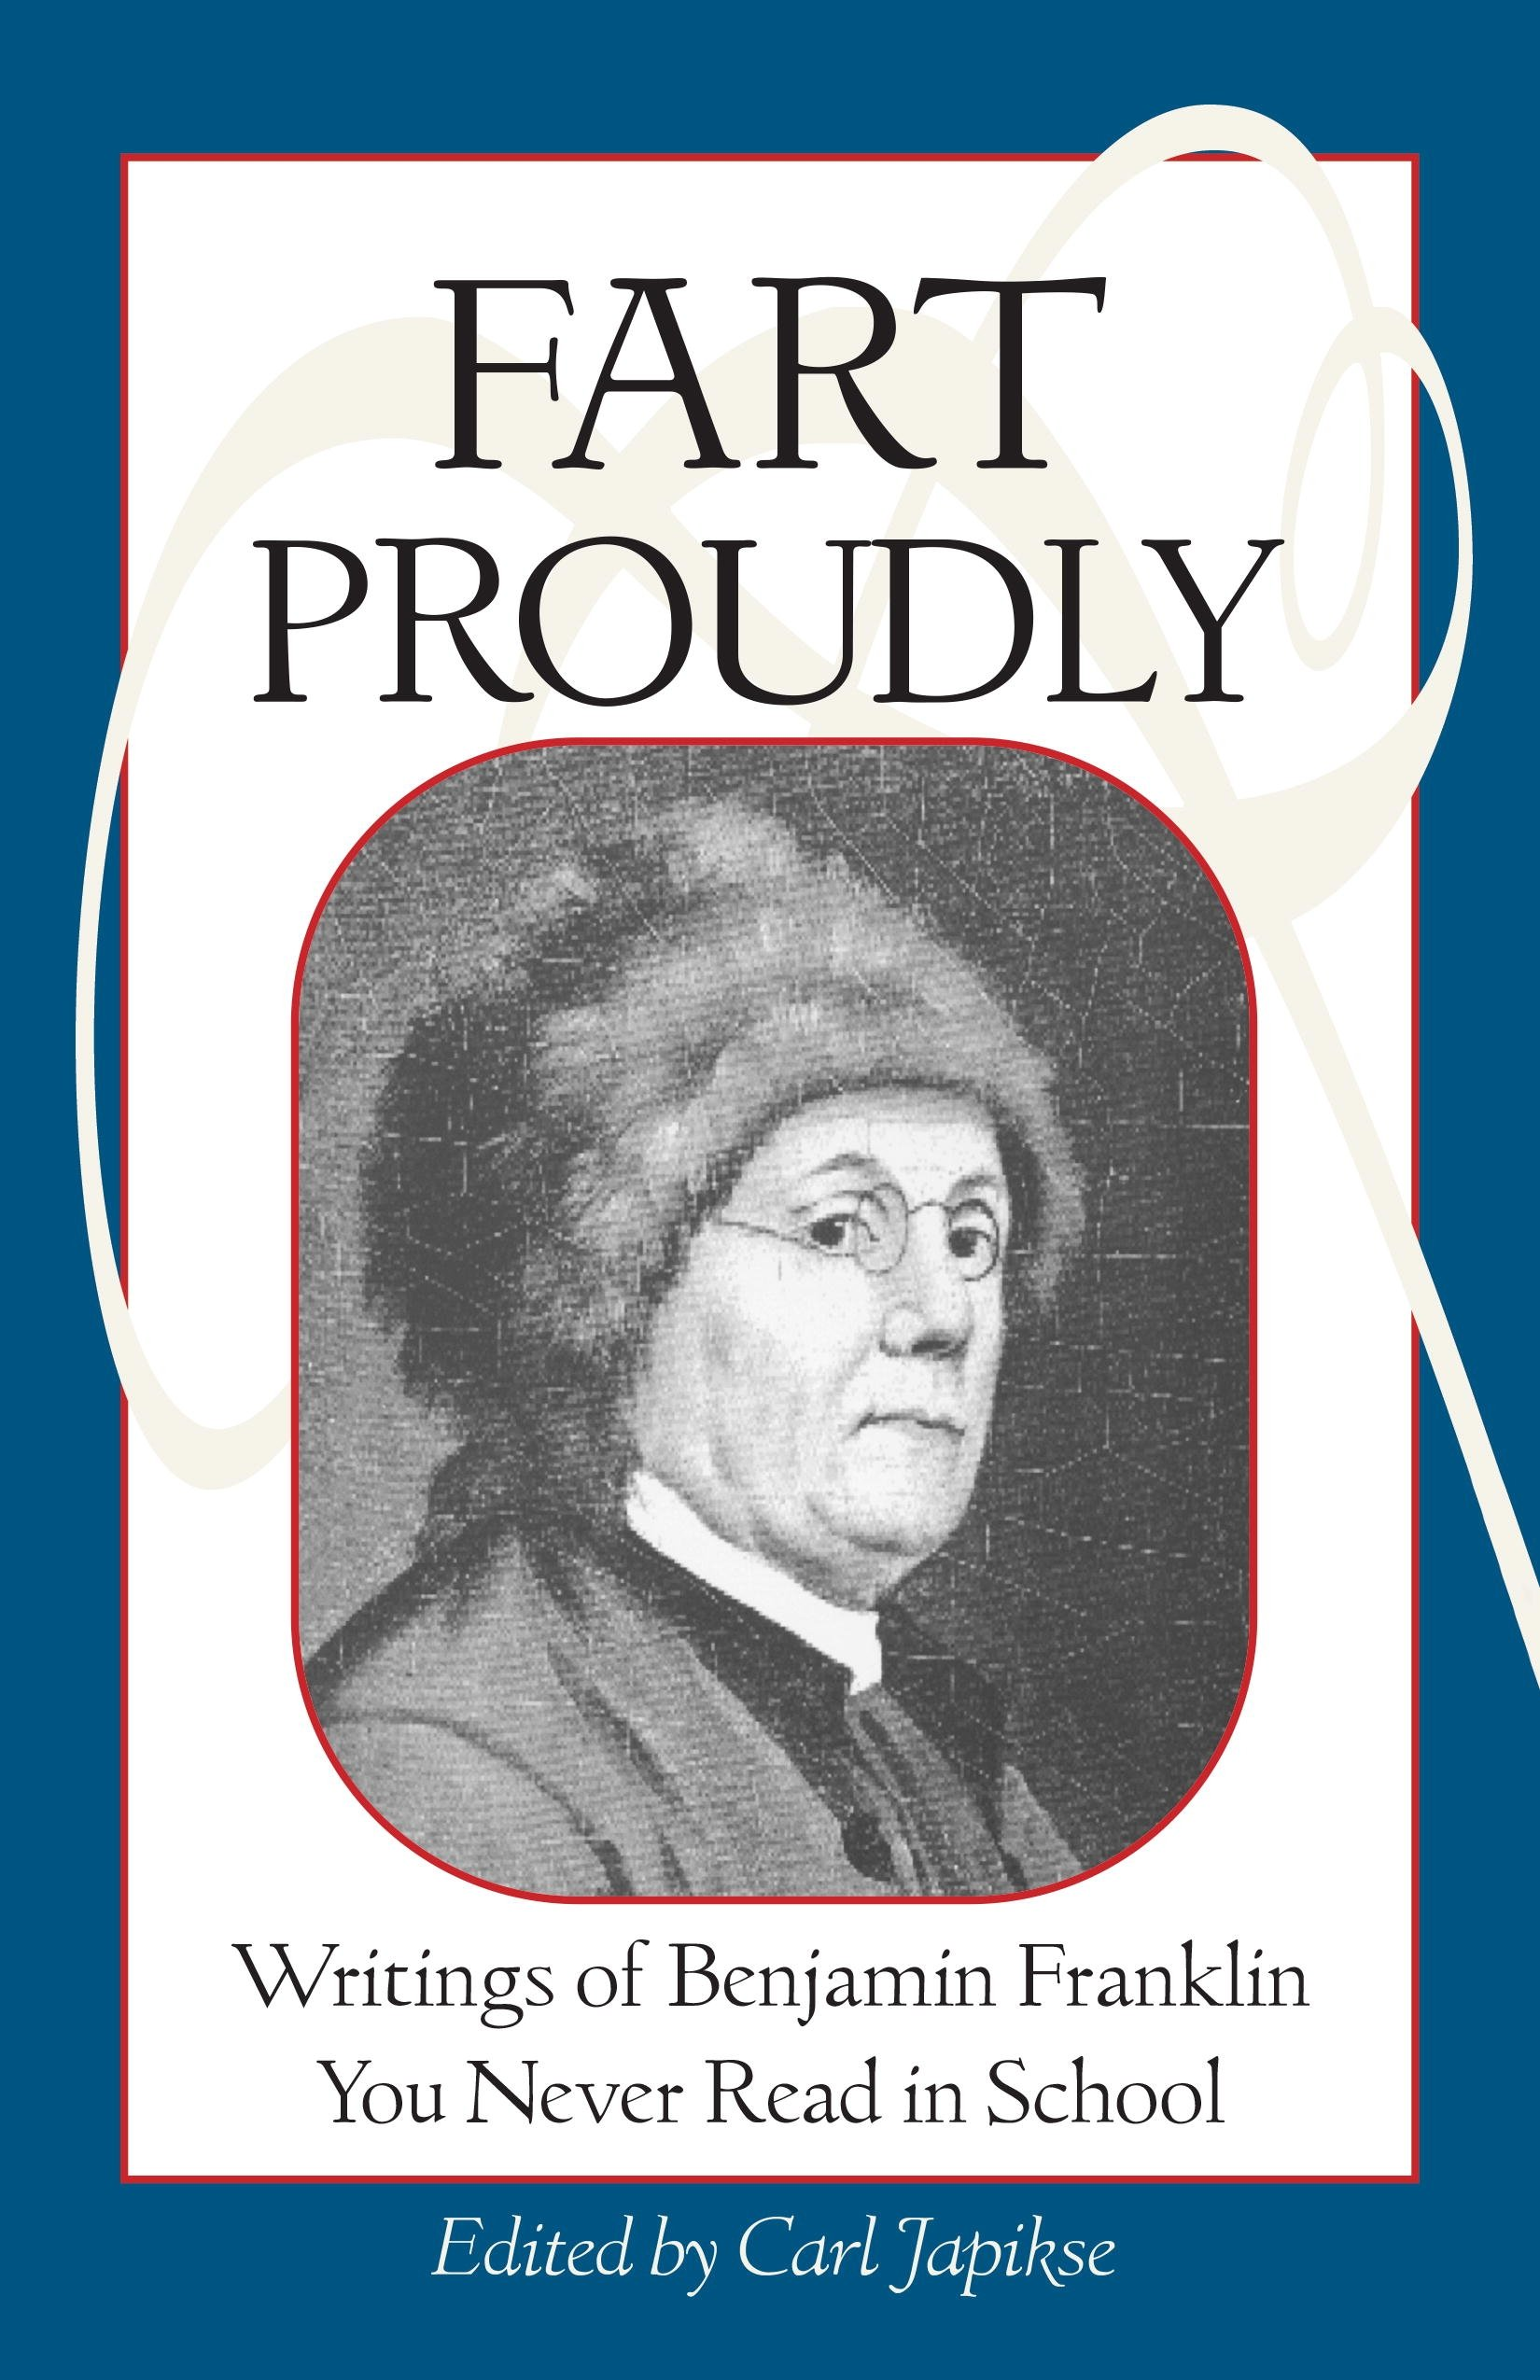 fart proudly writings of benjamin franklin you never in  fart proudly writings of benjamin franklin you never in school benjamin franklin carl japikse 9781583940792 com books